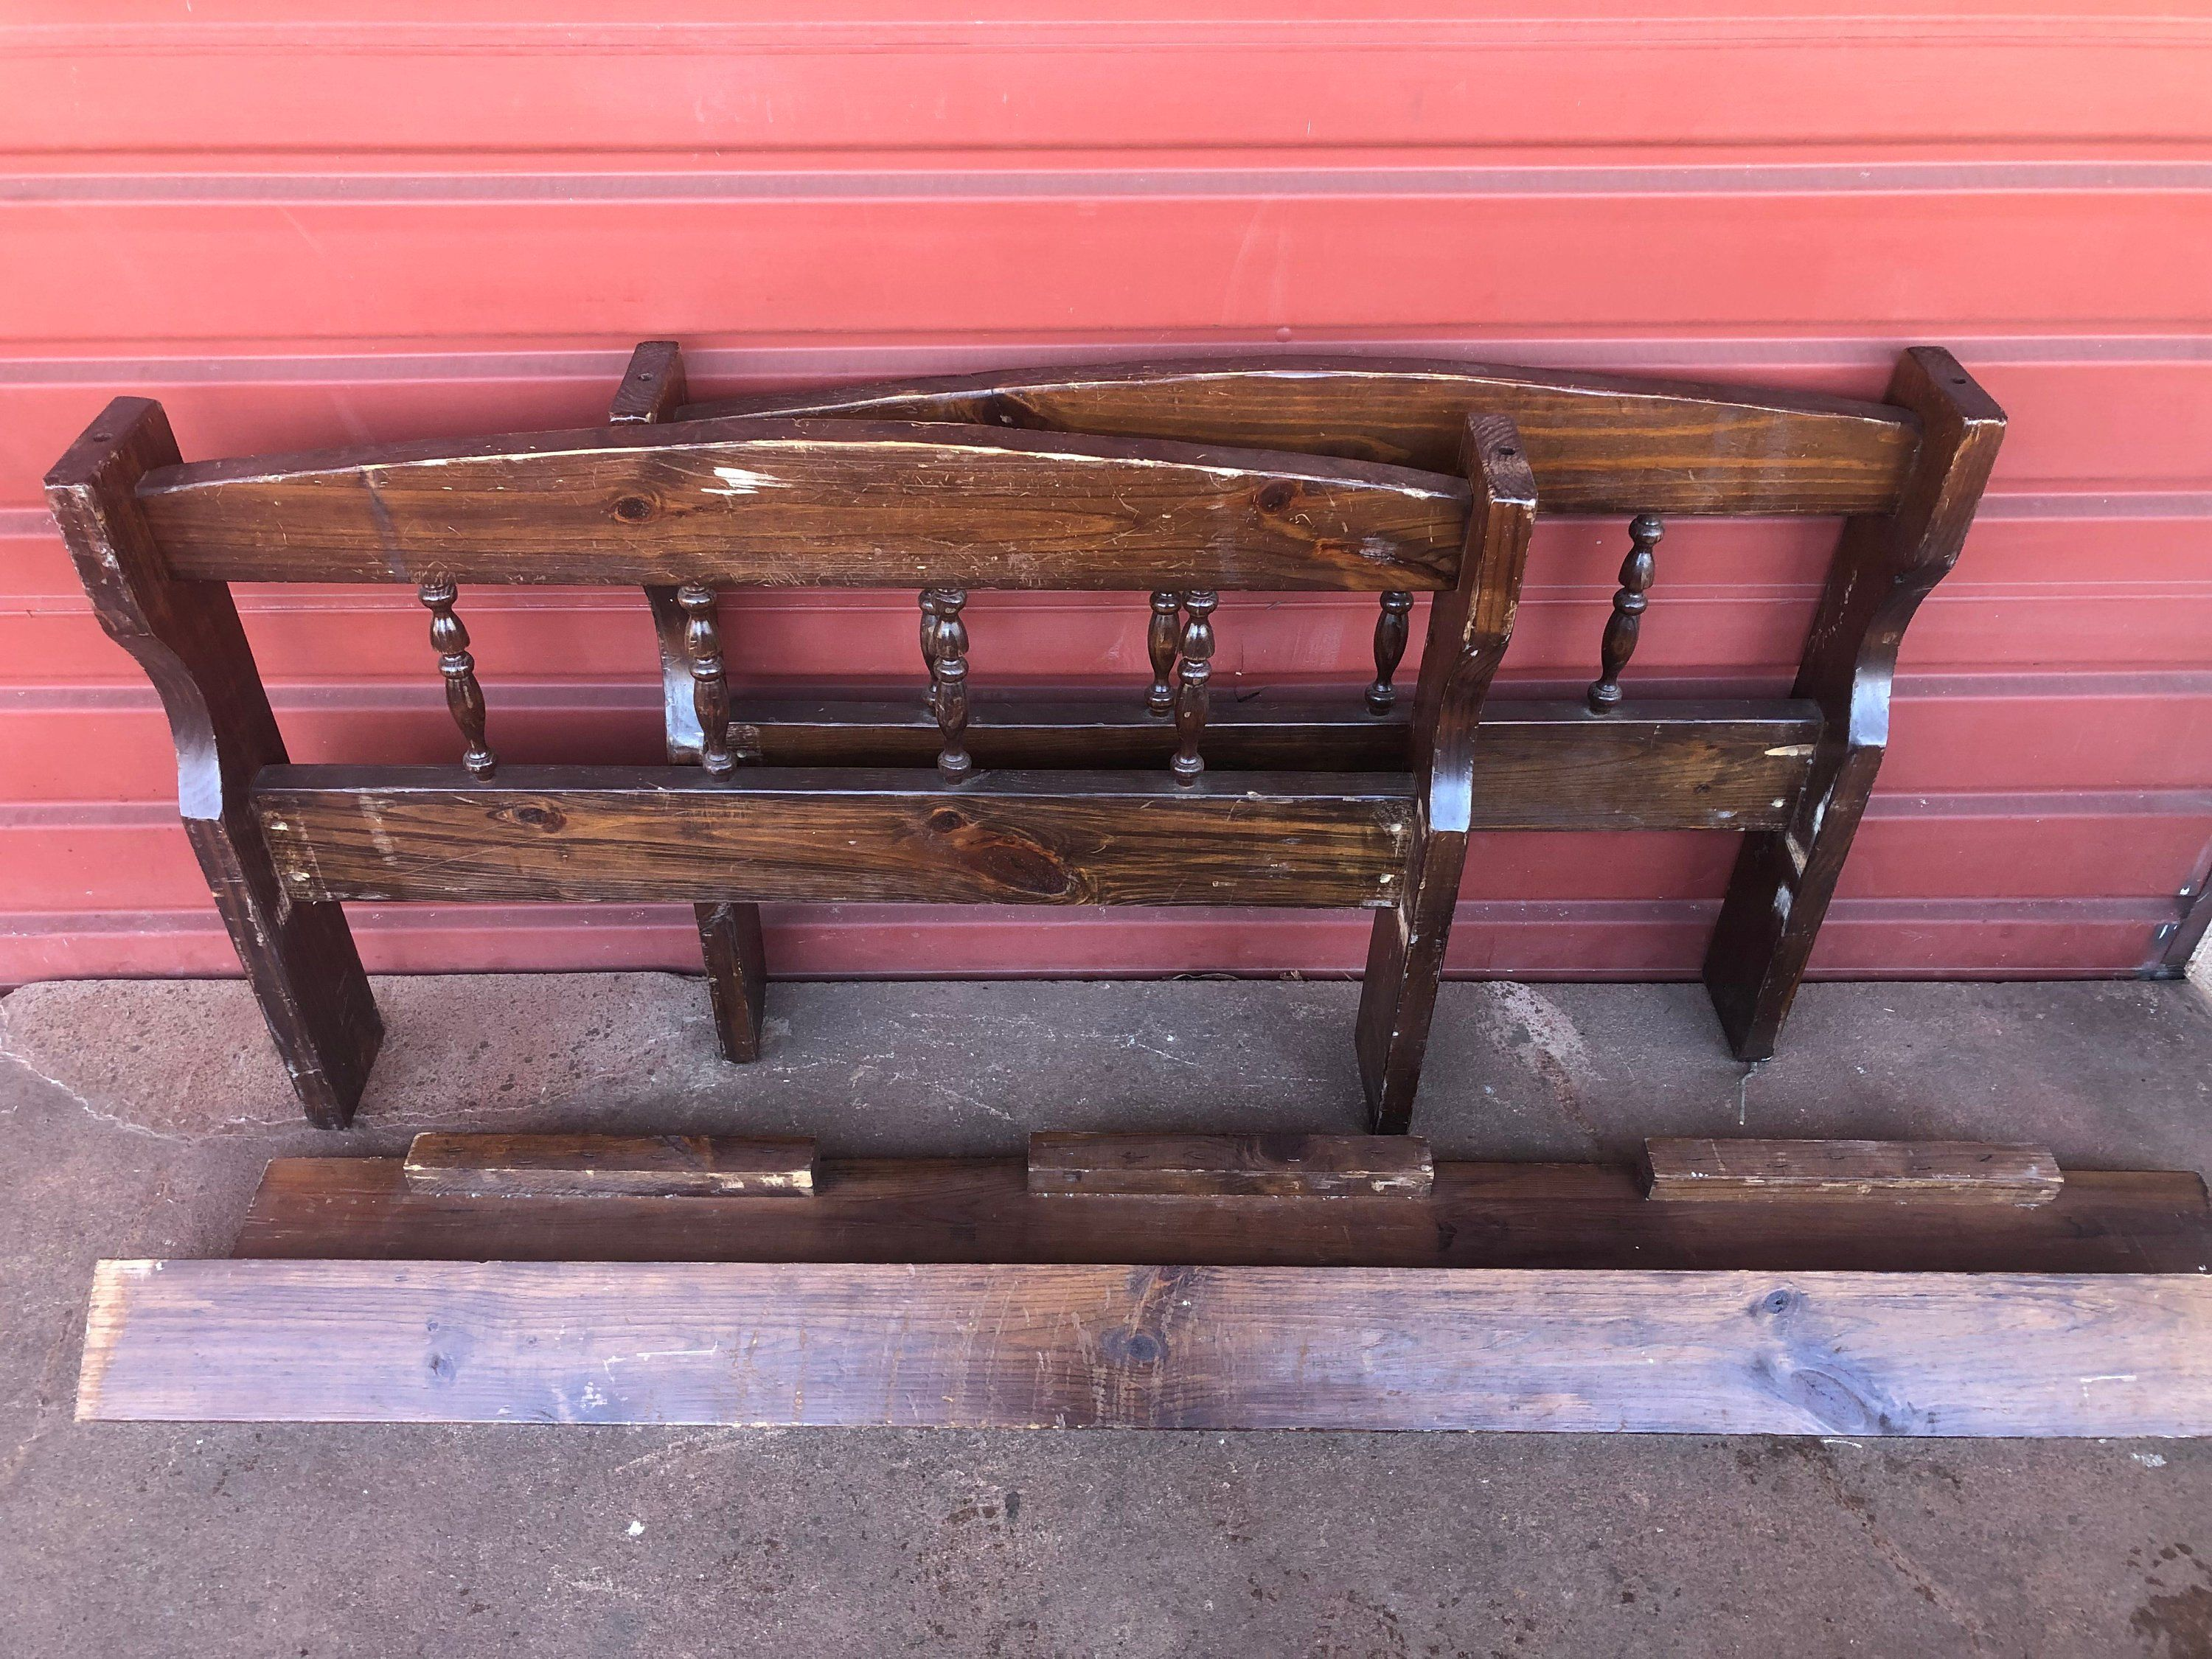 Vintage Wood Twin Bed Paint To Order Custom Painted Single Bed